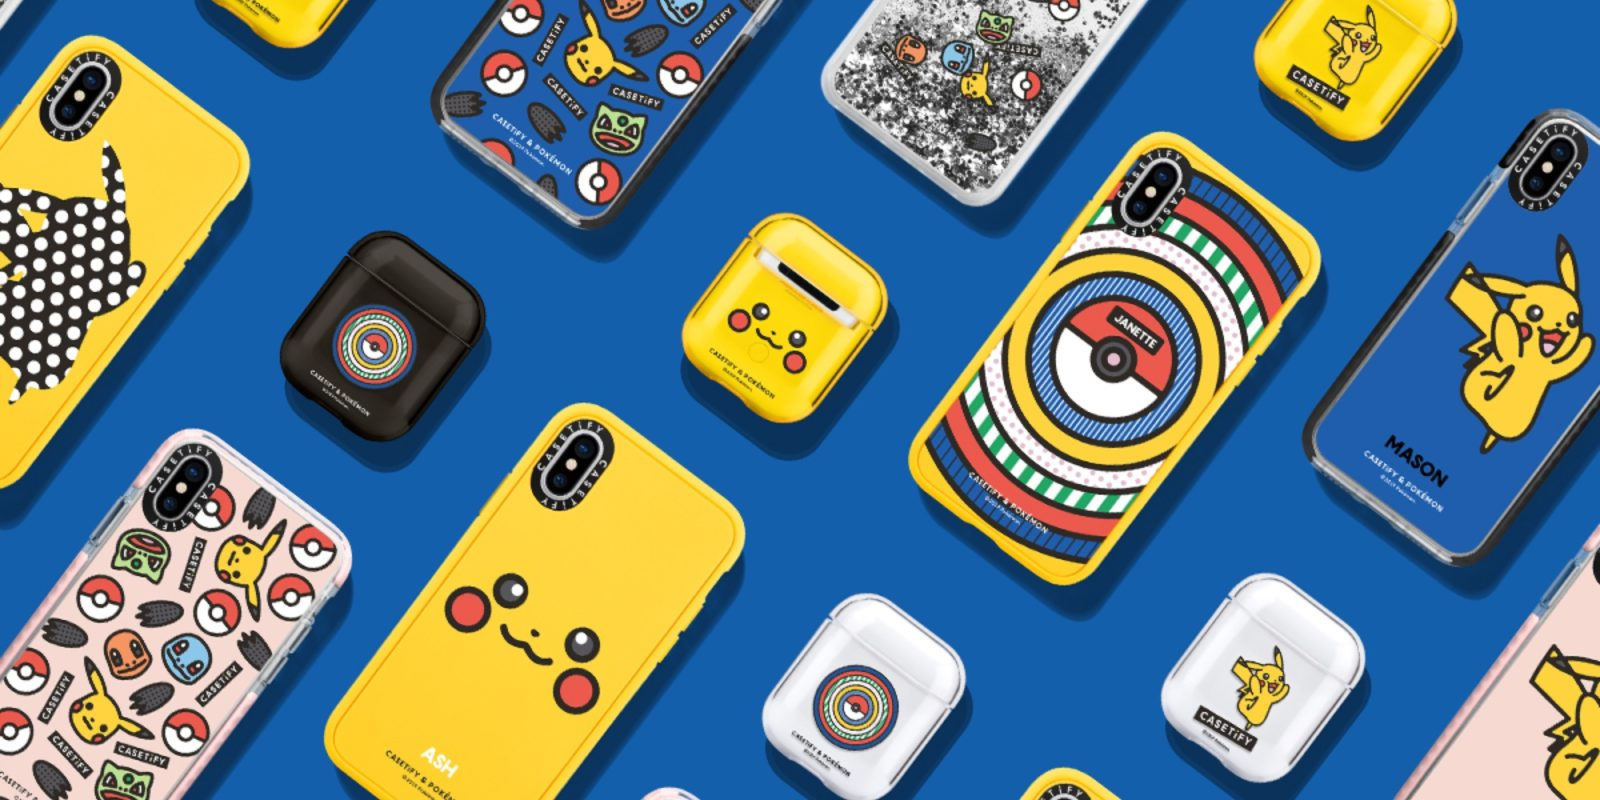 CASETiFY unveils Pokémon-themed Mac, iPhone and iPad gear in latest collection